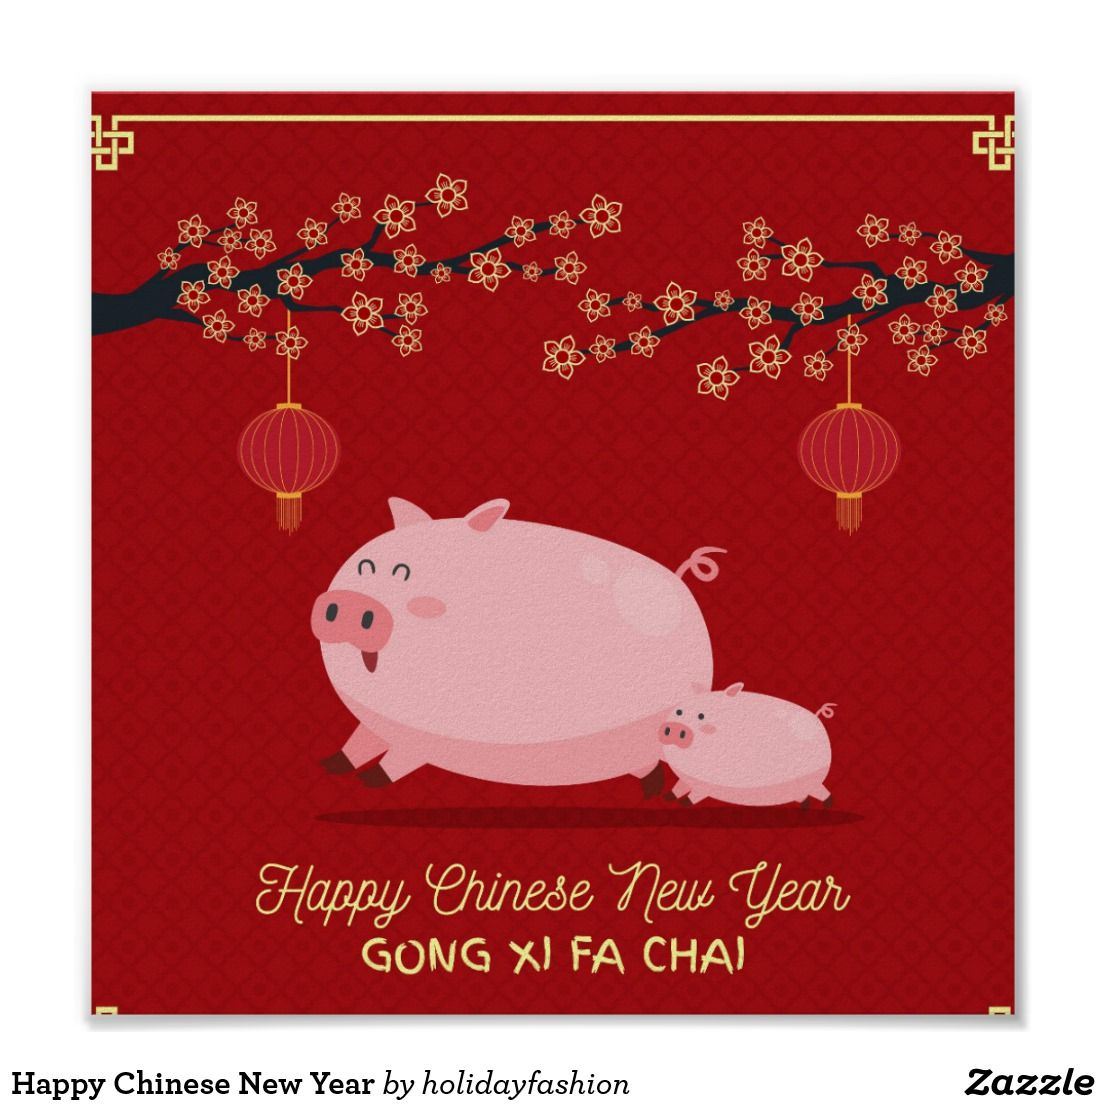 Happy Chinese New Year Poster Chinese new